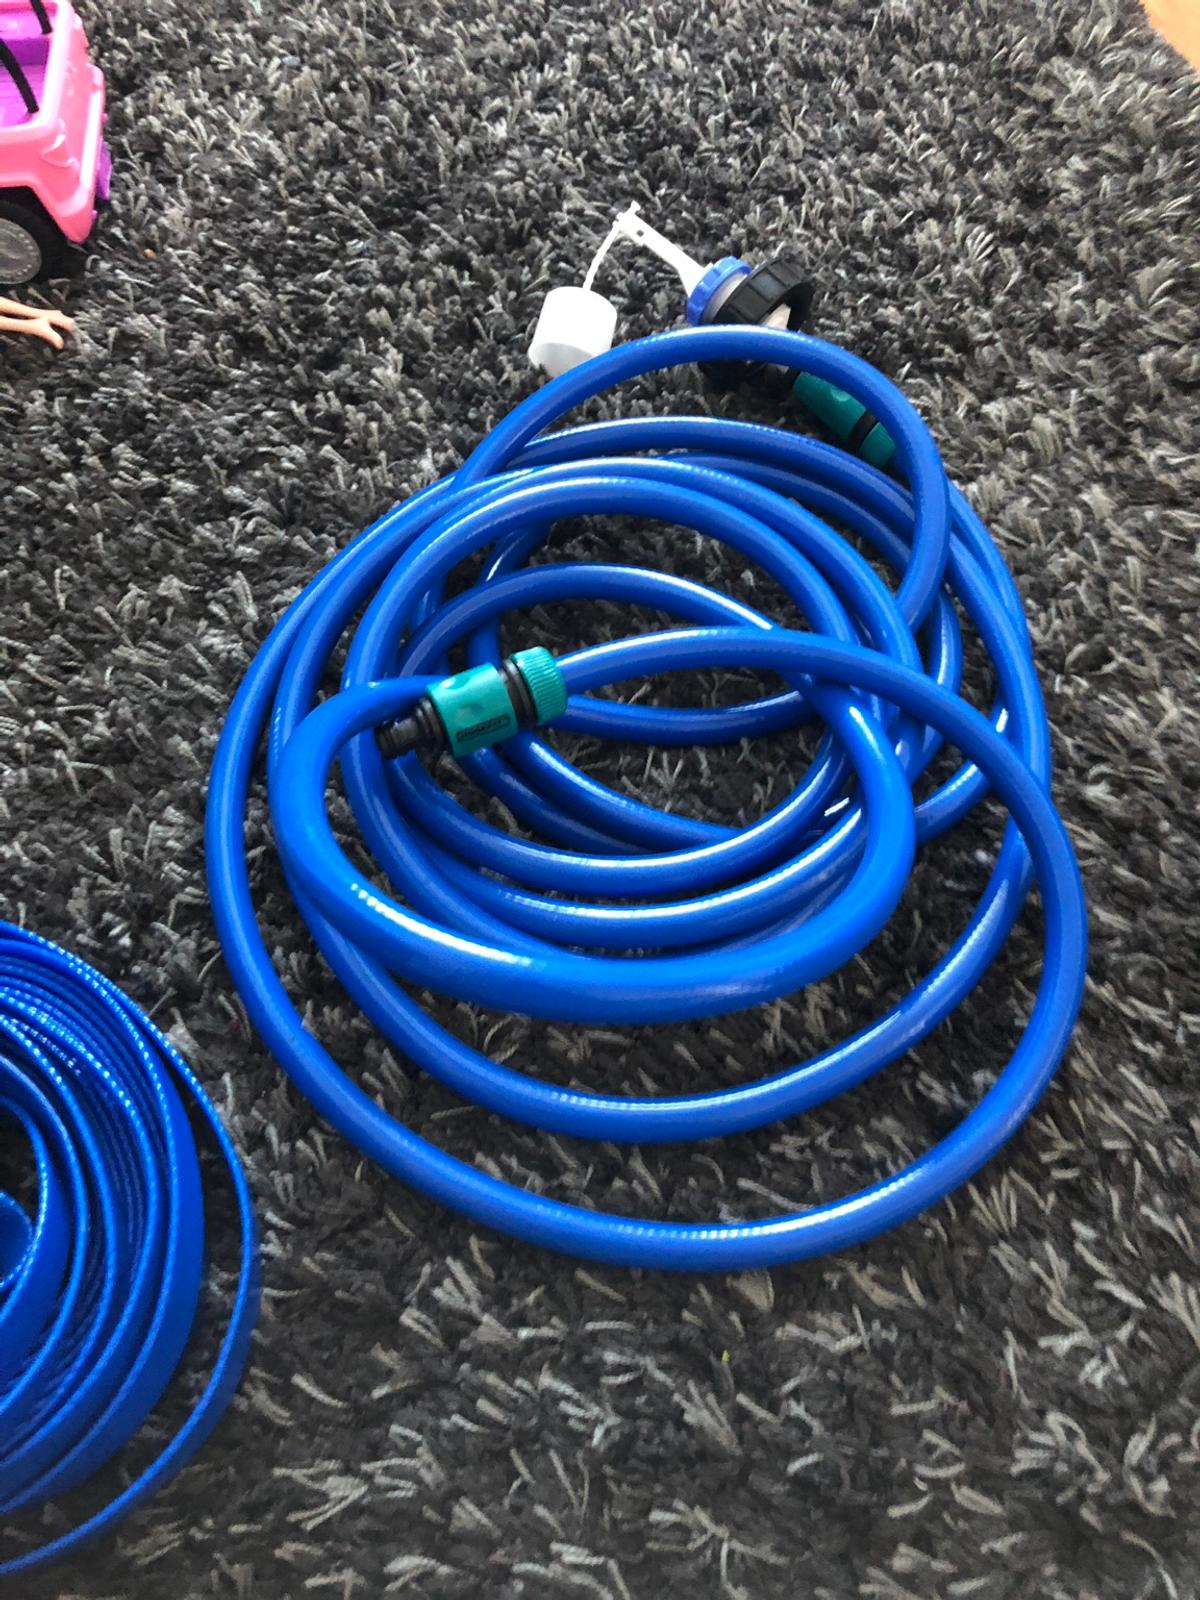 Constant water supply for caravan aqua roll never have to fill it again new pick up only £30 no offers